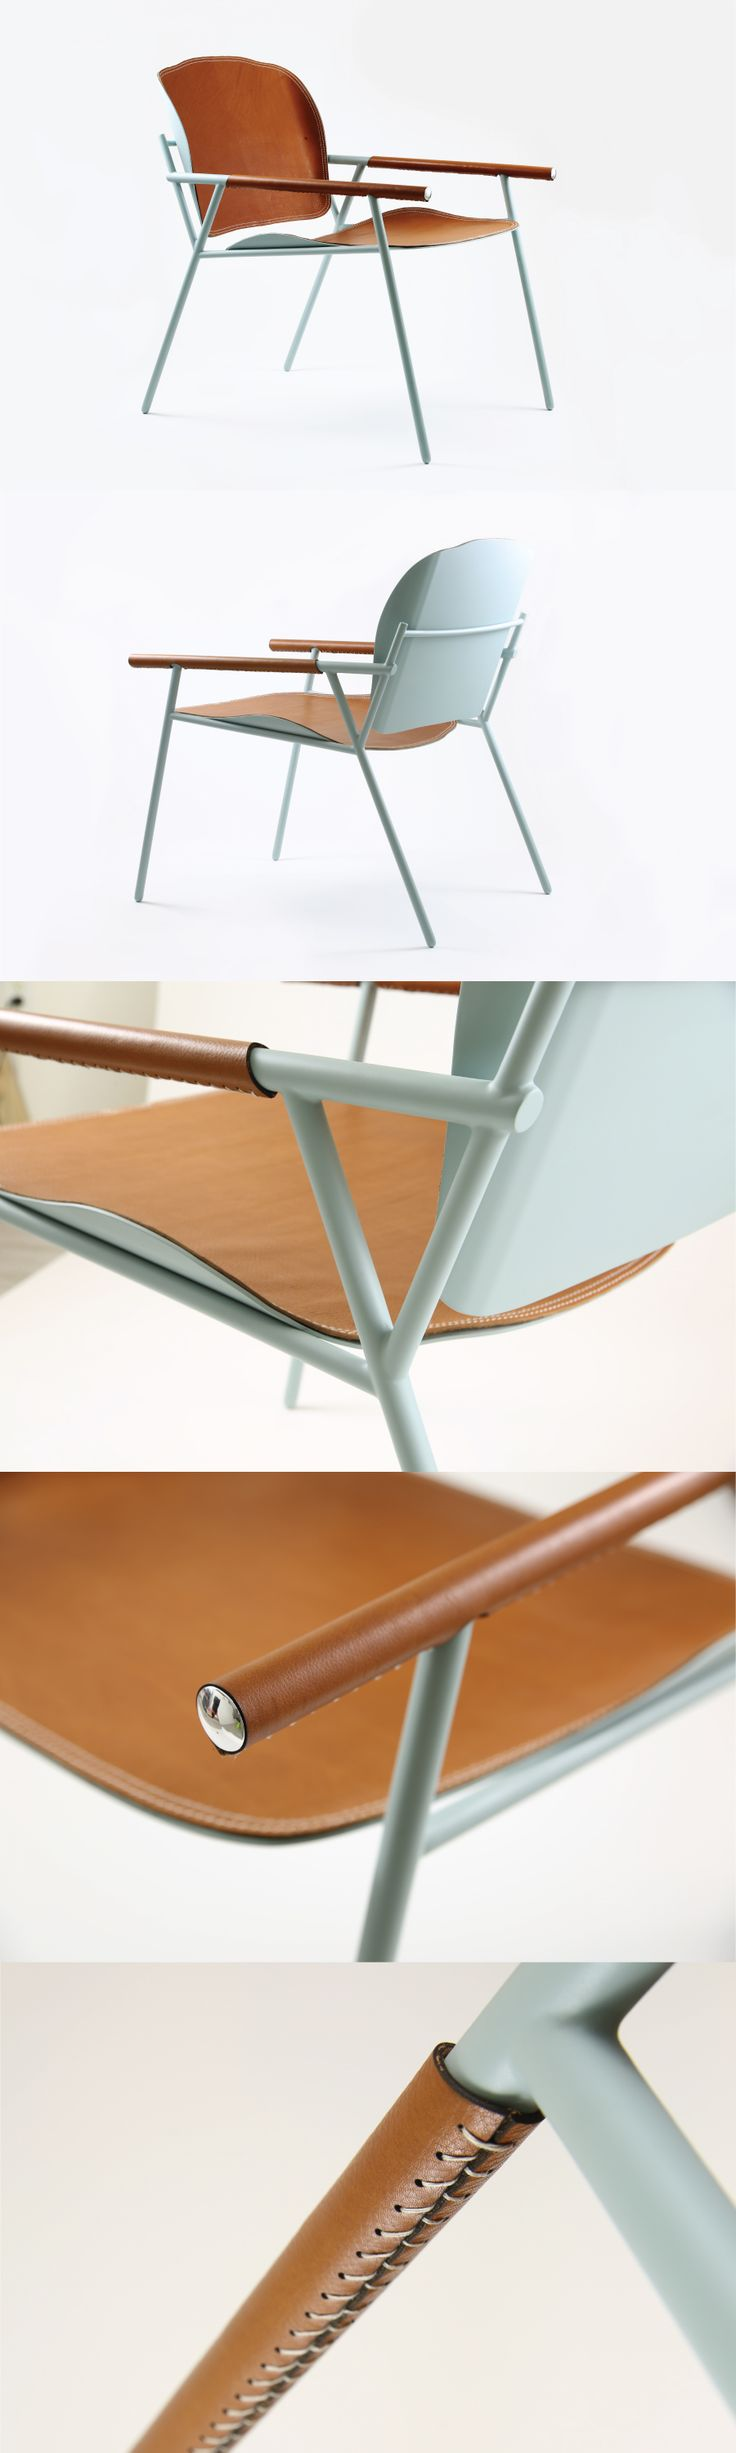 380 best images about great design on pinterest patent for Ariel chaise lounge